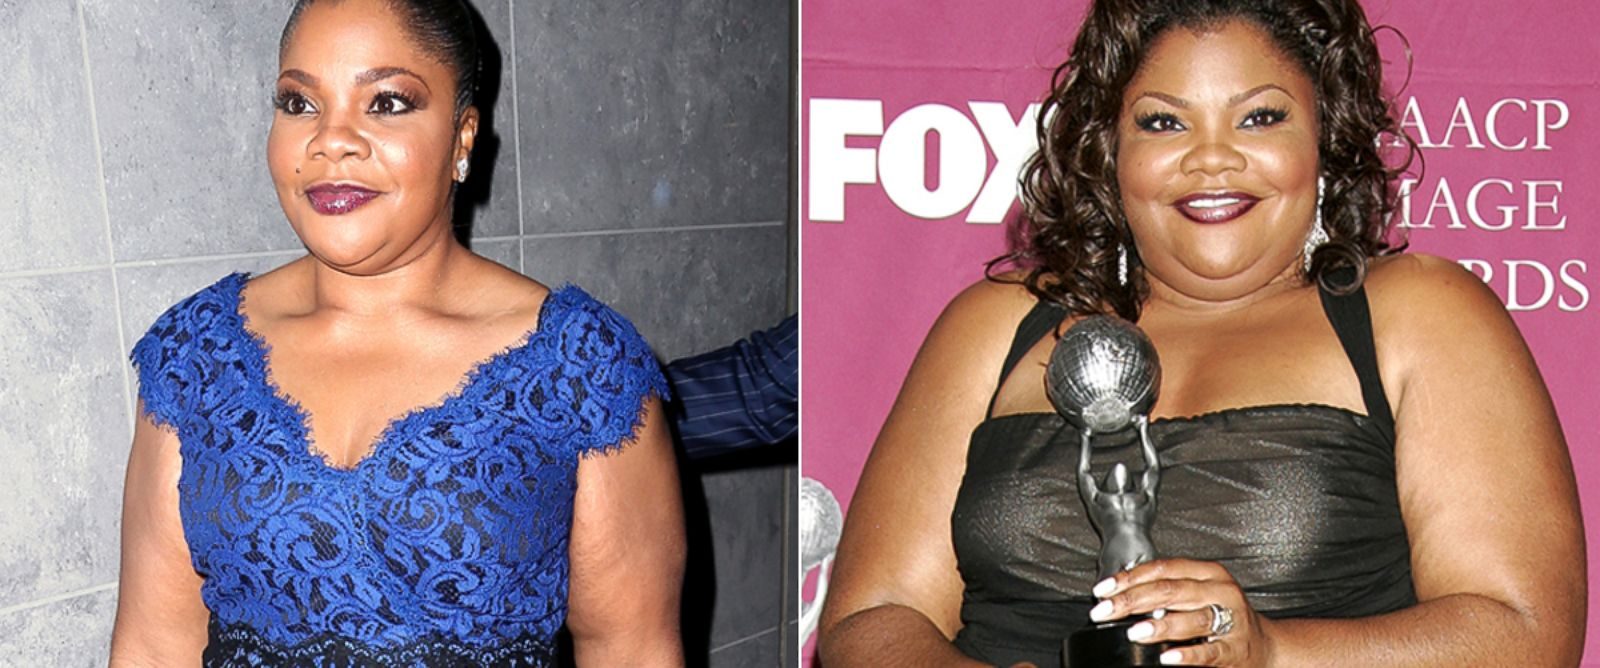 PHOTO: MoNique in 2014 and 2005.